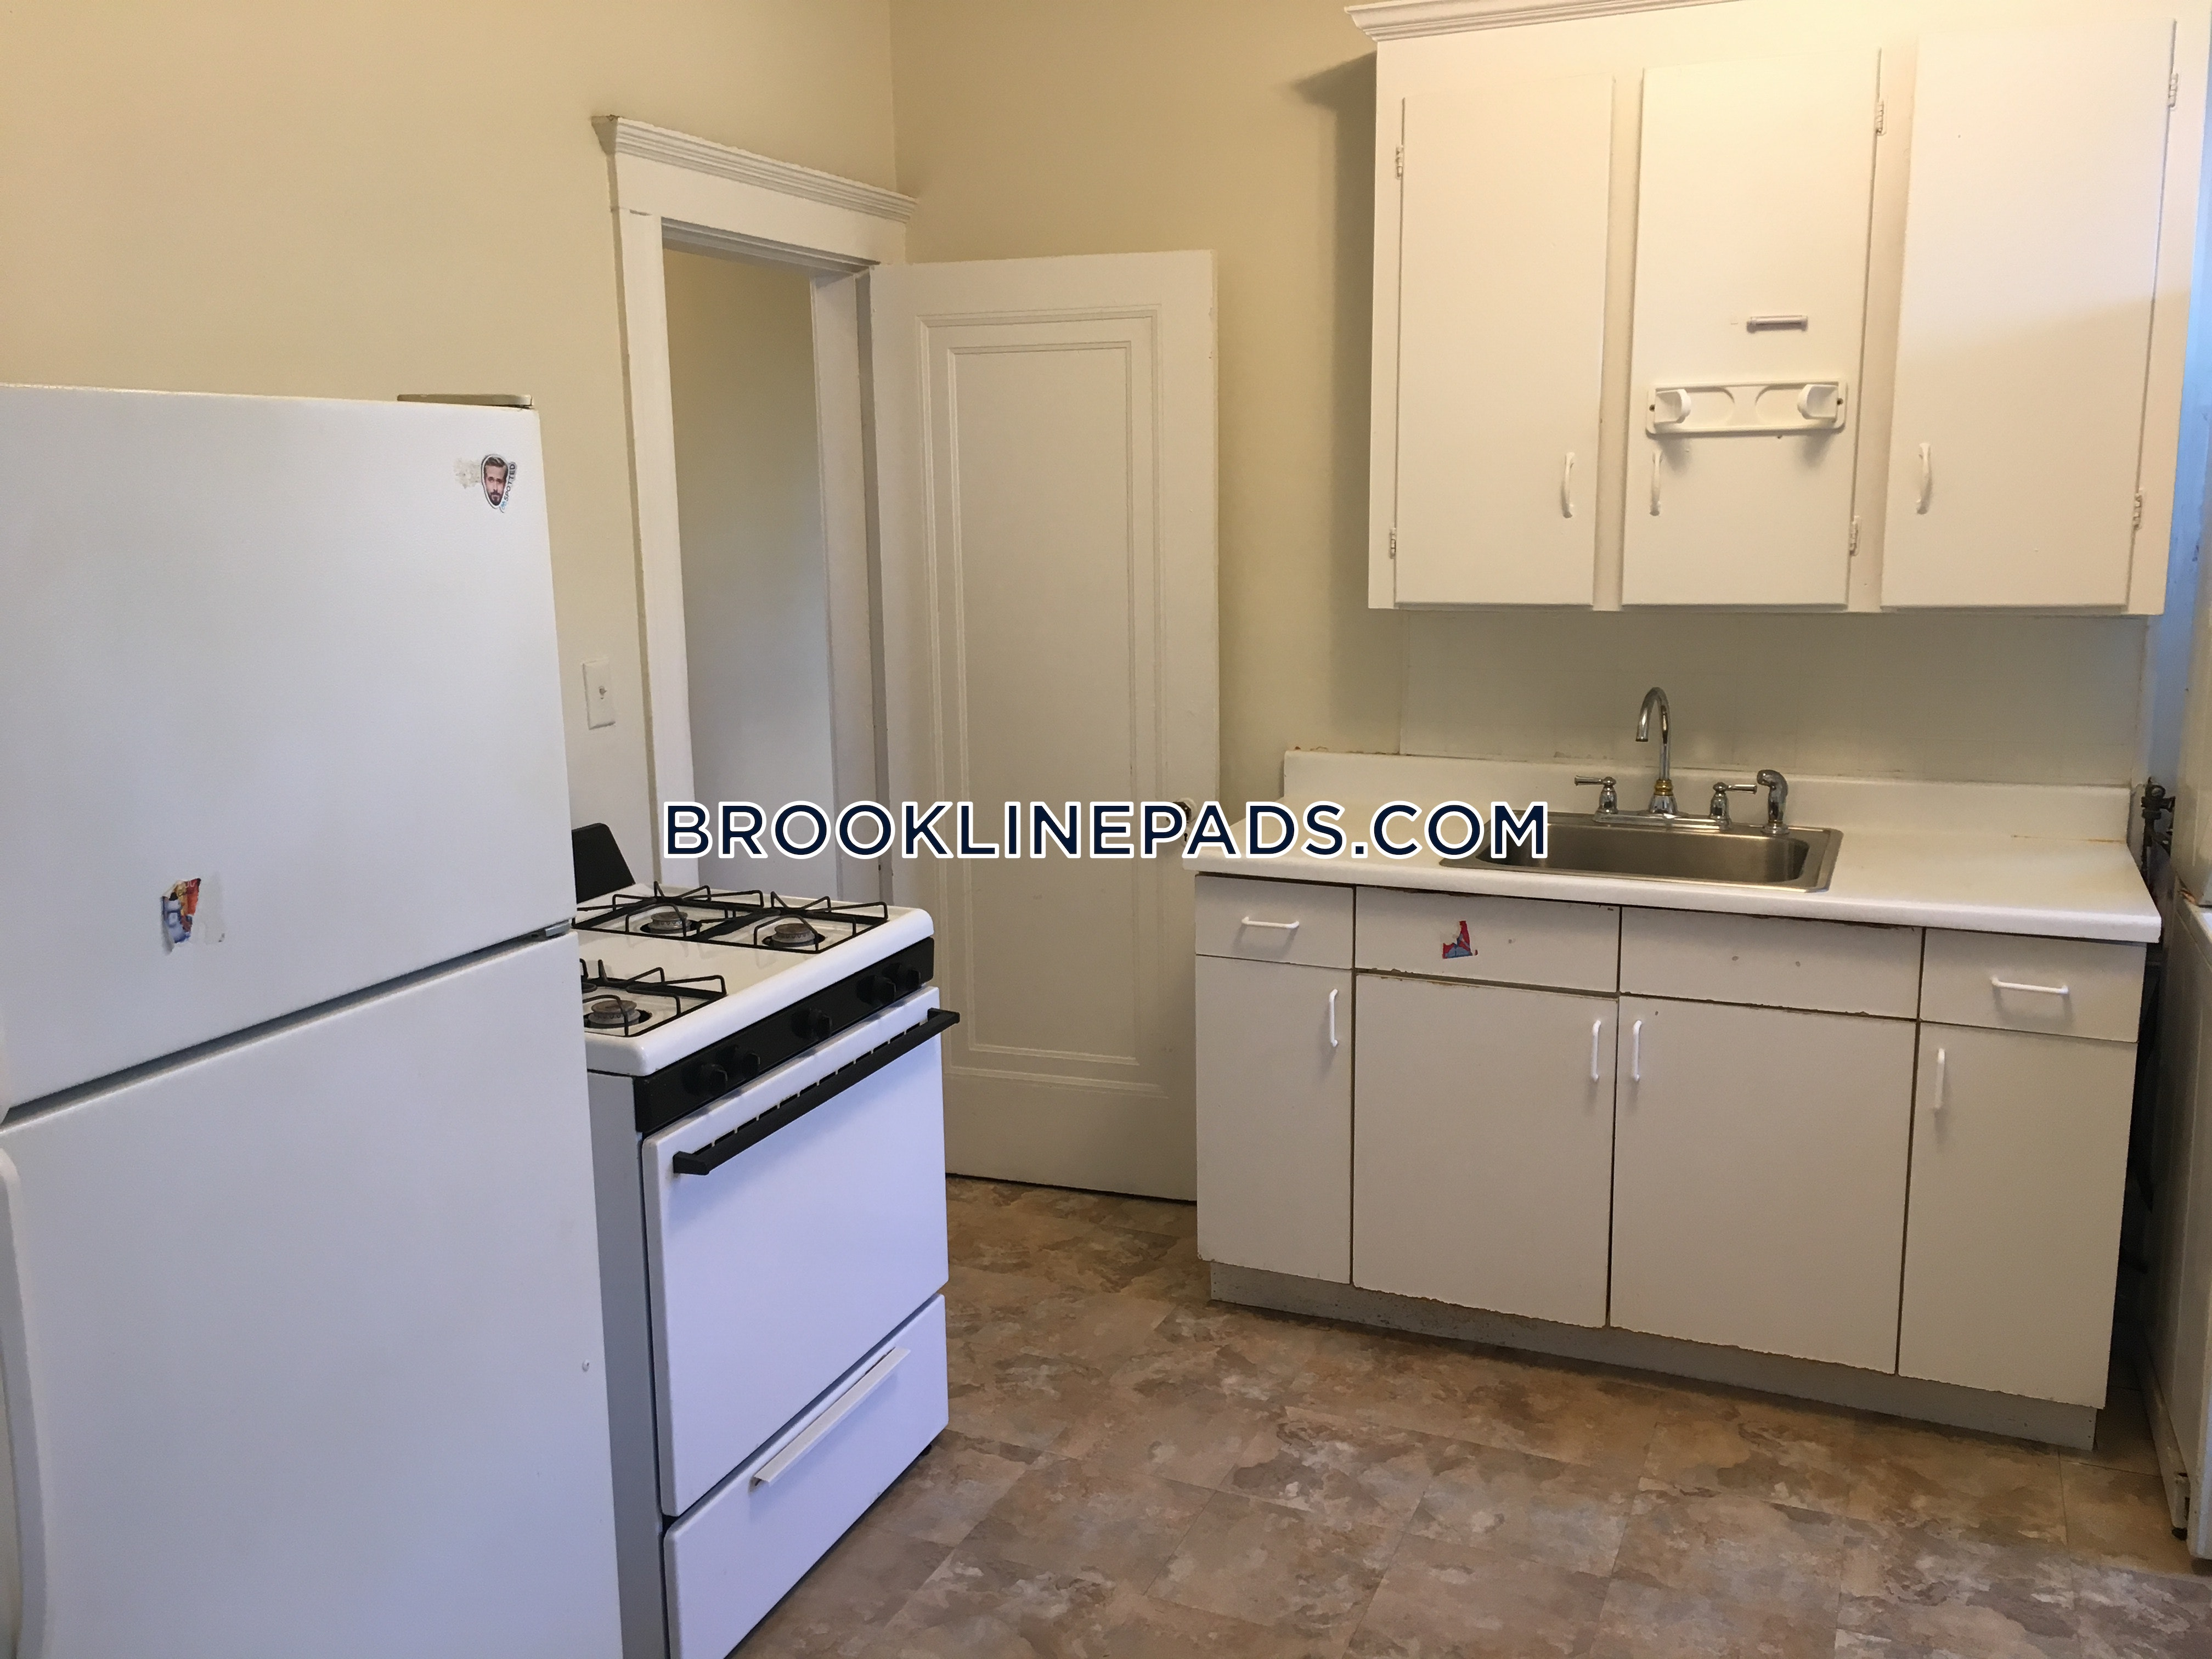 2 Beds 1 Bath - Brookline- Washington Square $2,475